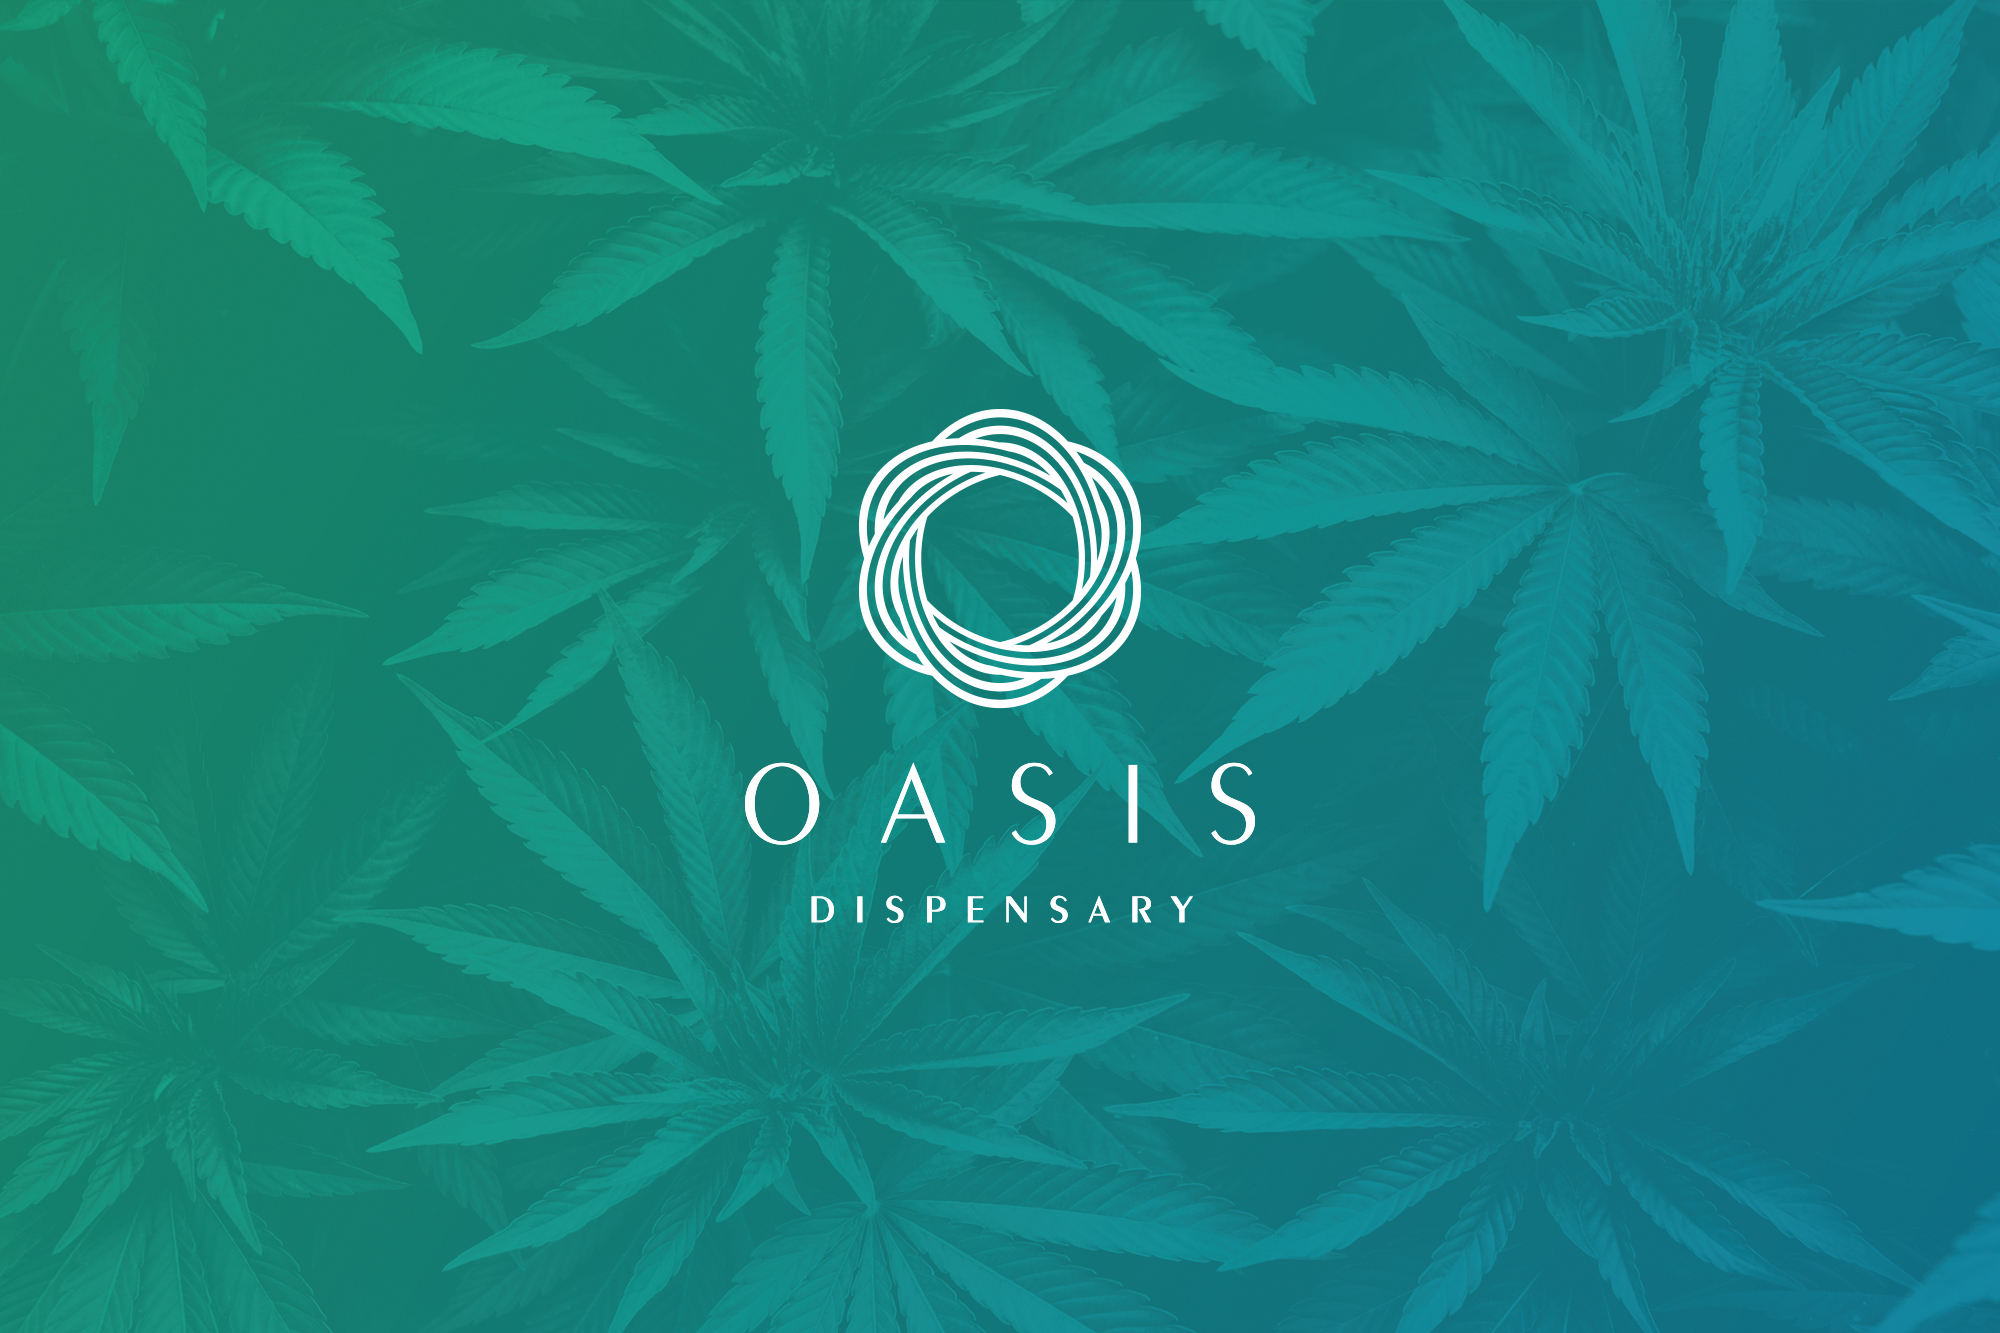 Oasis Dispensary - Strategy & Branding  View Project